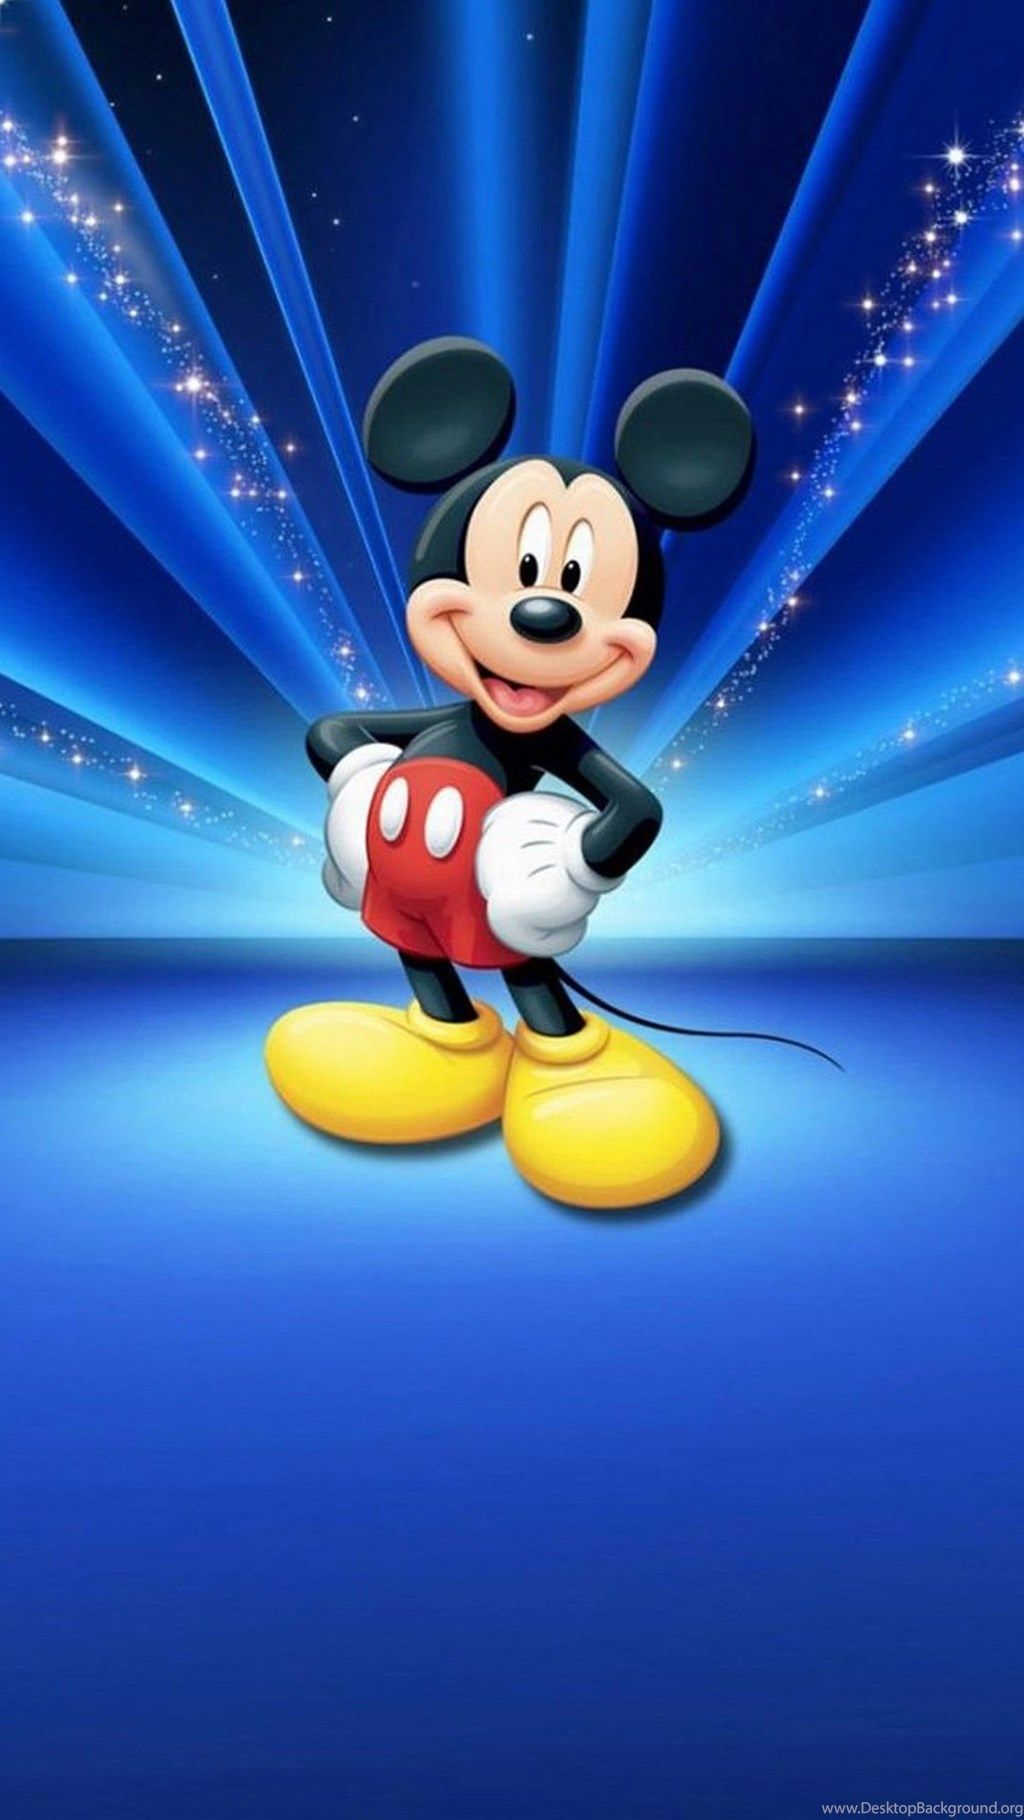 Blue Mickey Mouse Wallpapers Top Free Blue Mickey Mouse